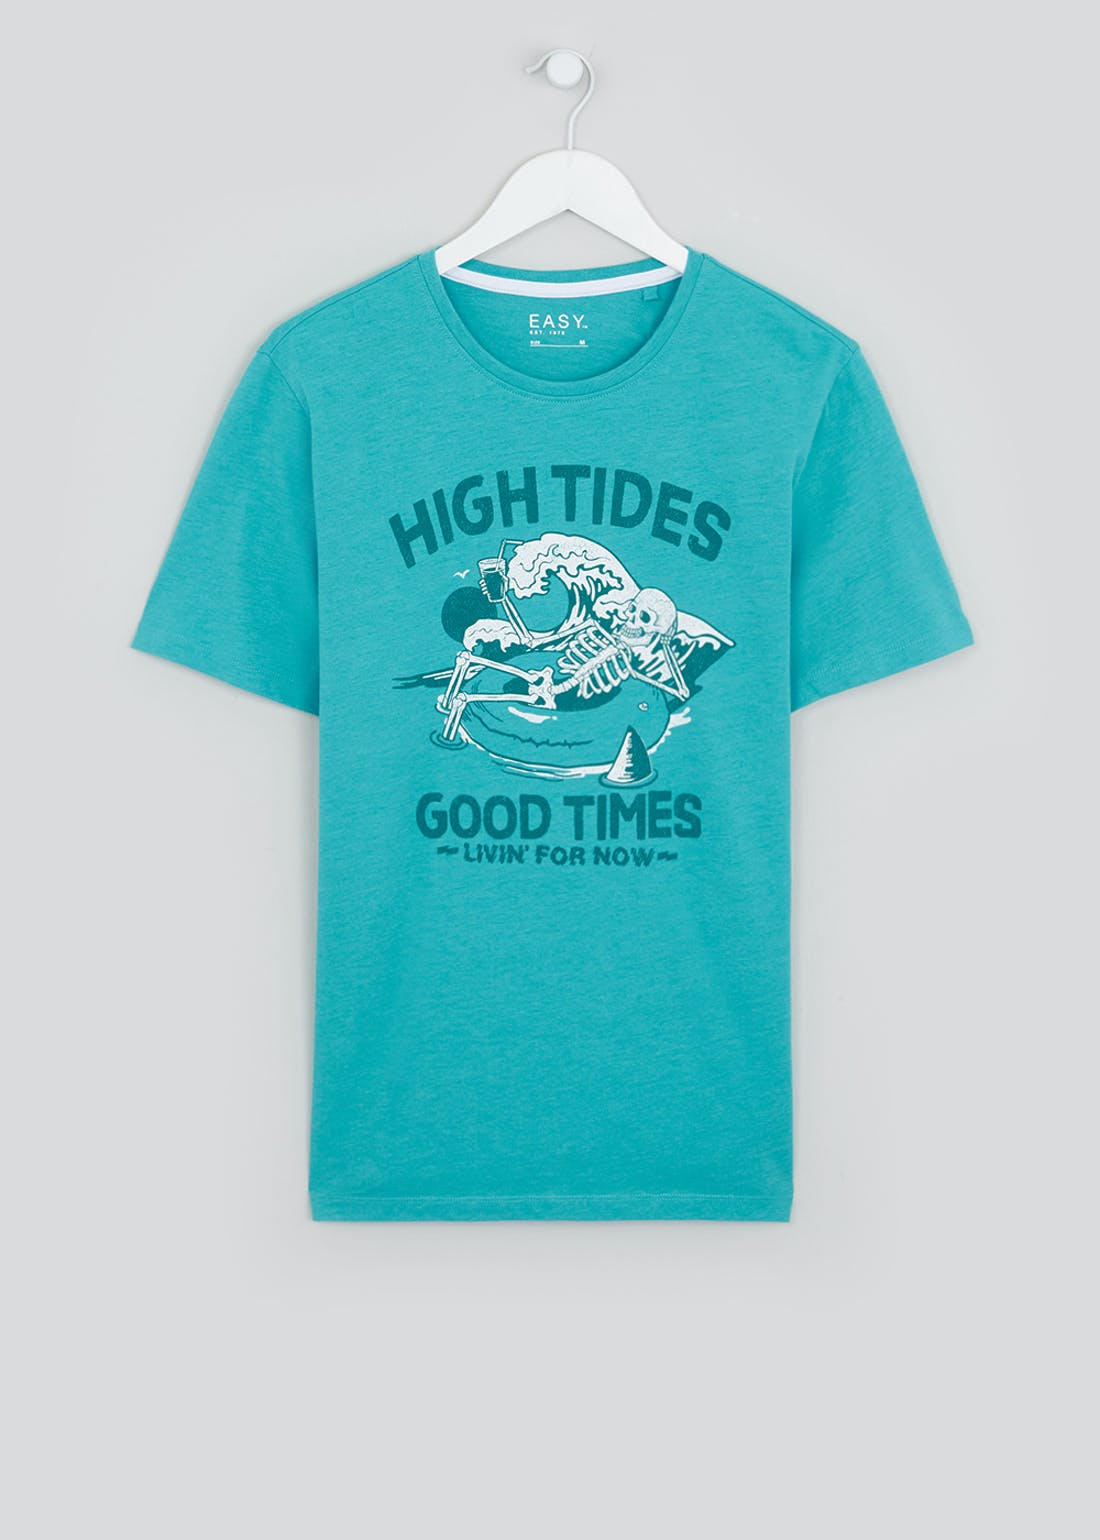 High Tides Slogan T-Shirt